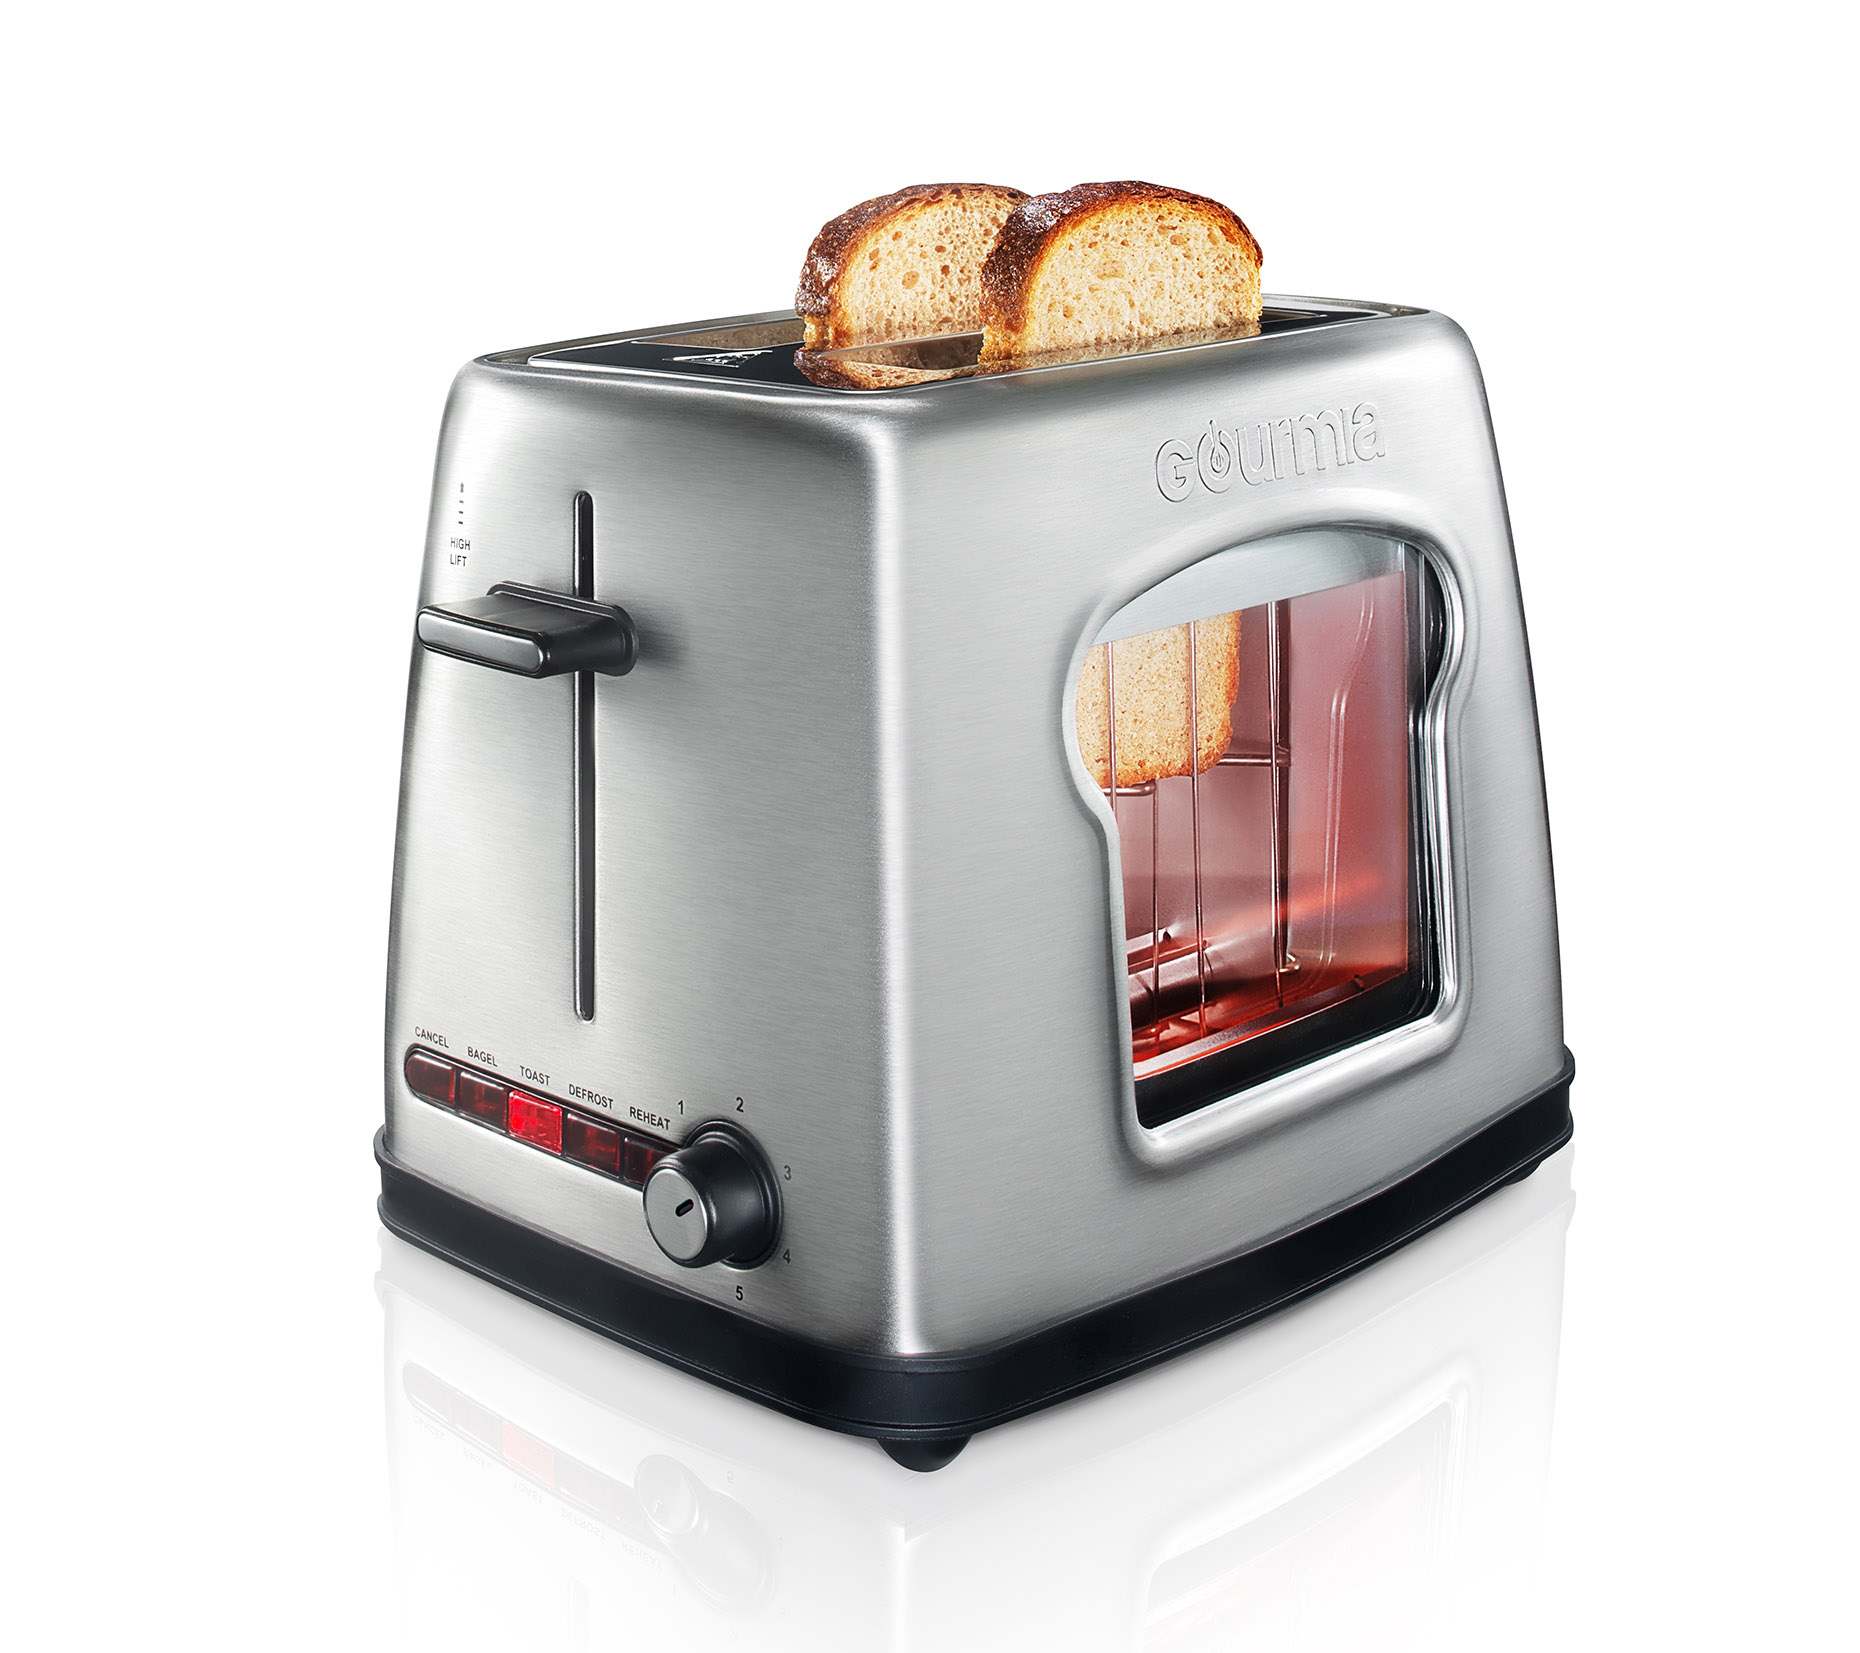 New-york-luxury-still-life-studio-toaster-on-whitepg